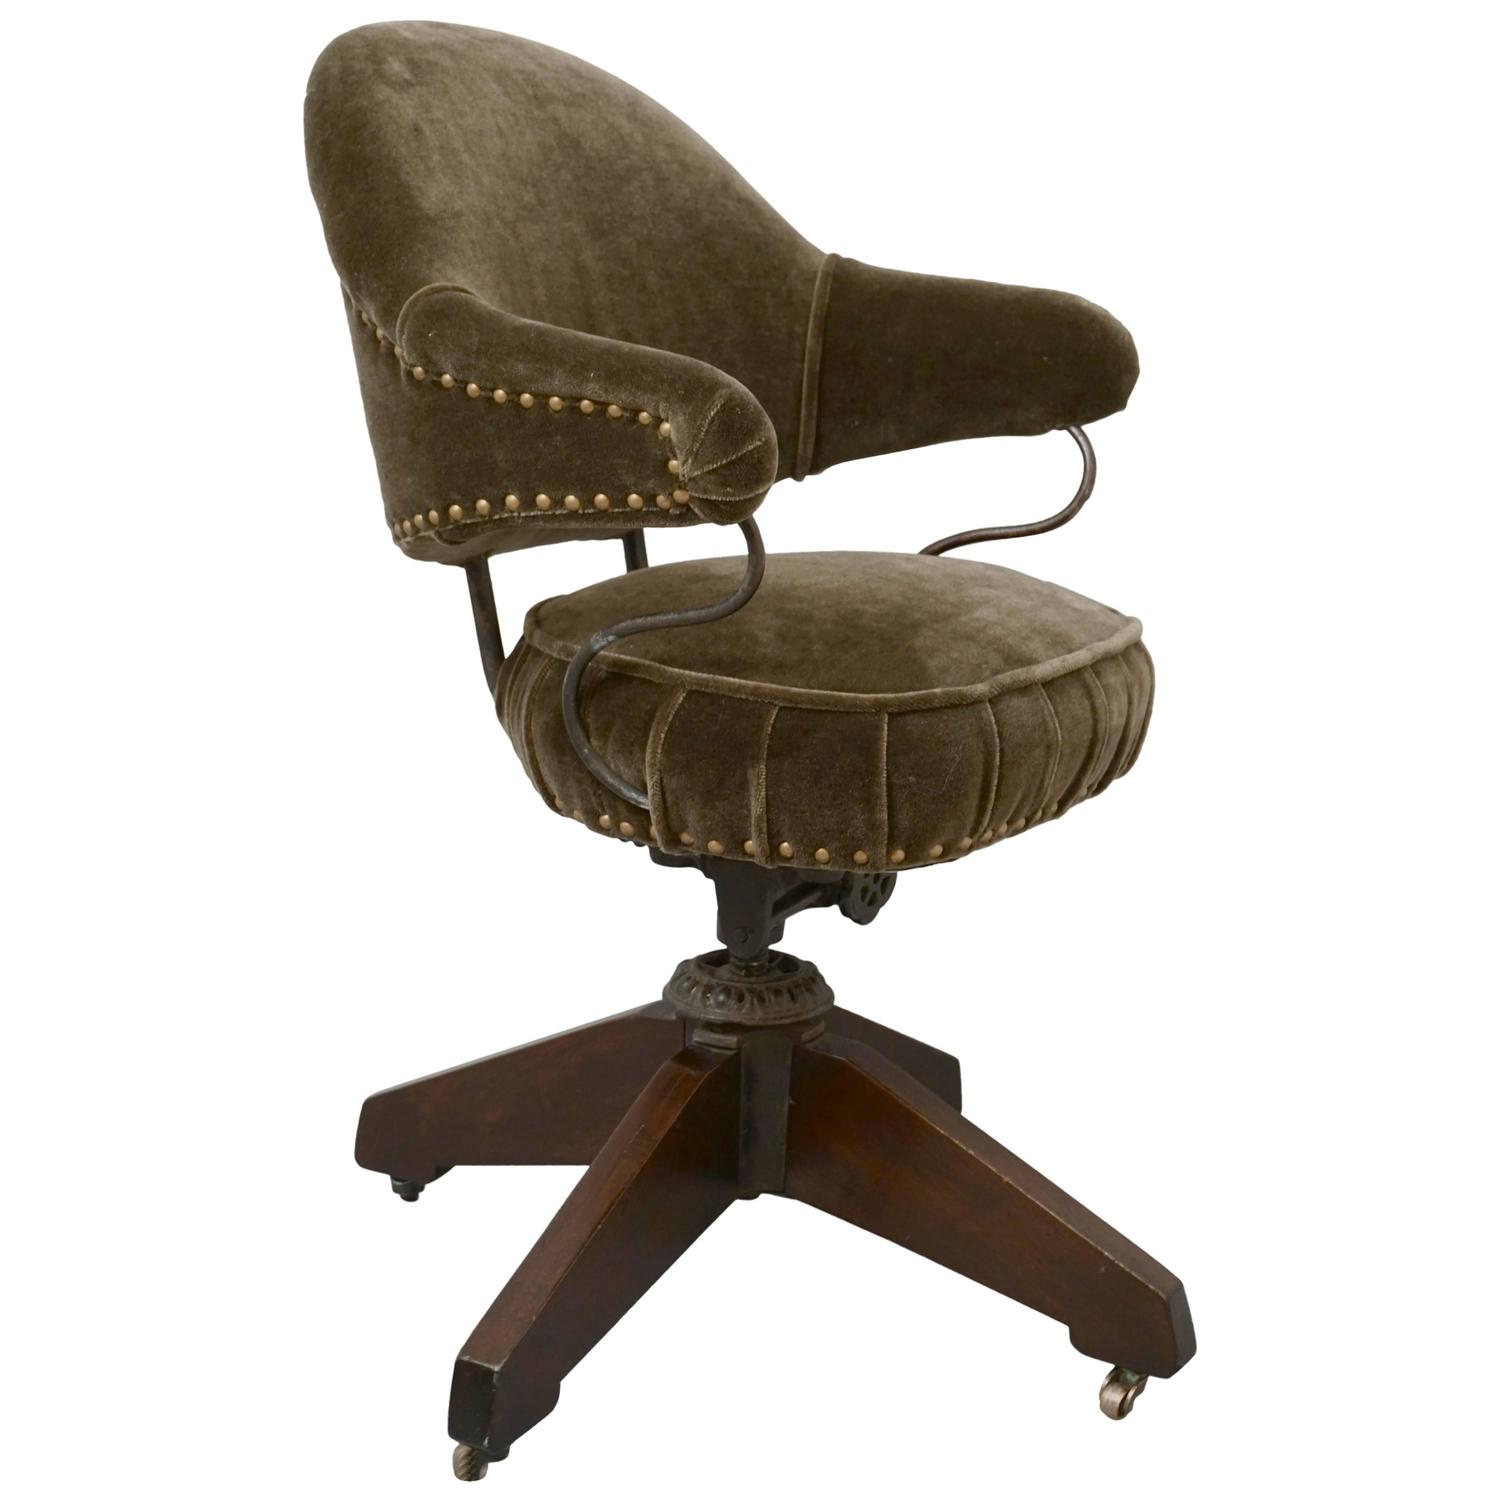 Early 20th Century Office Chair In Mohair At 1stdibs